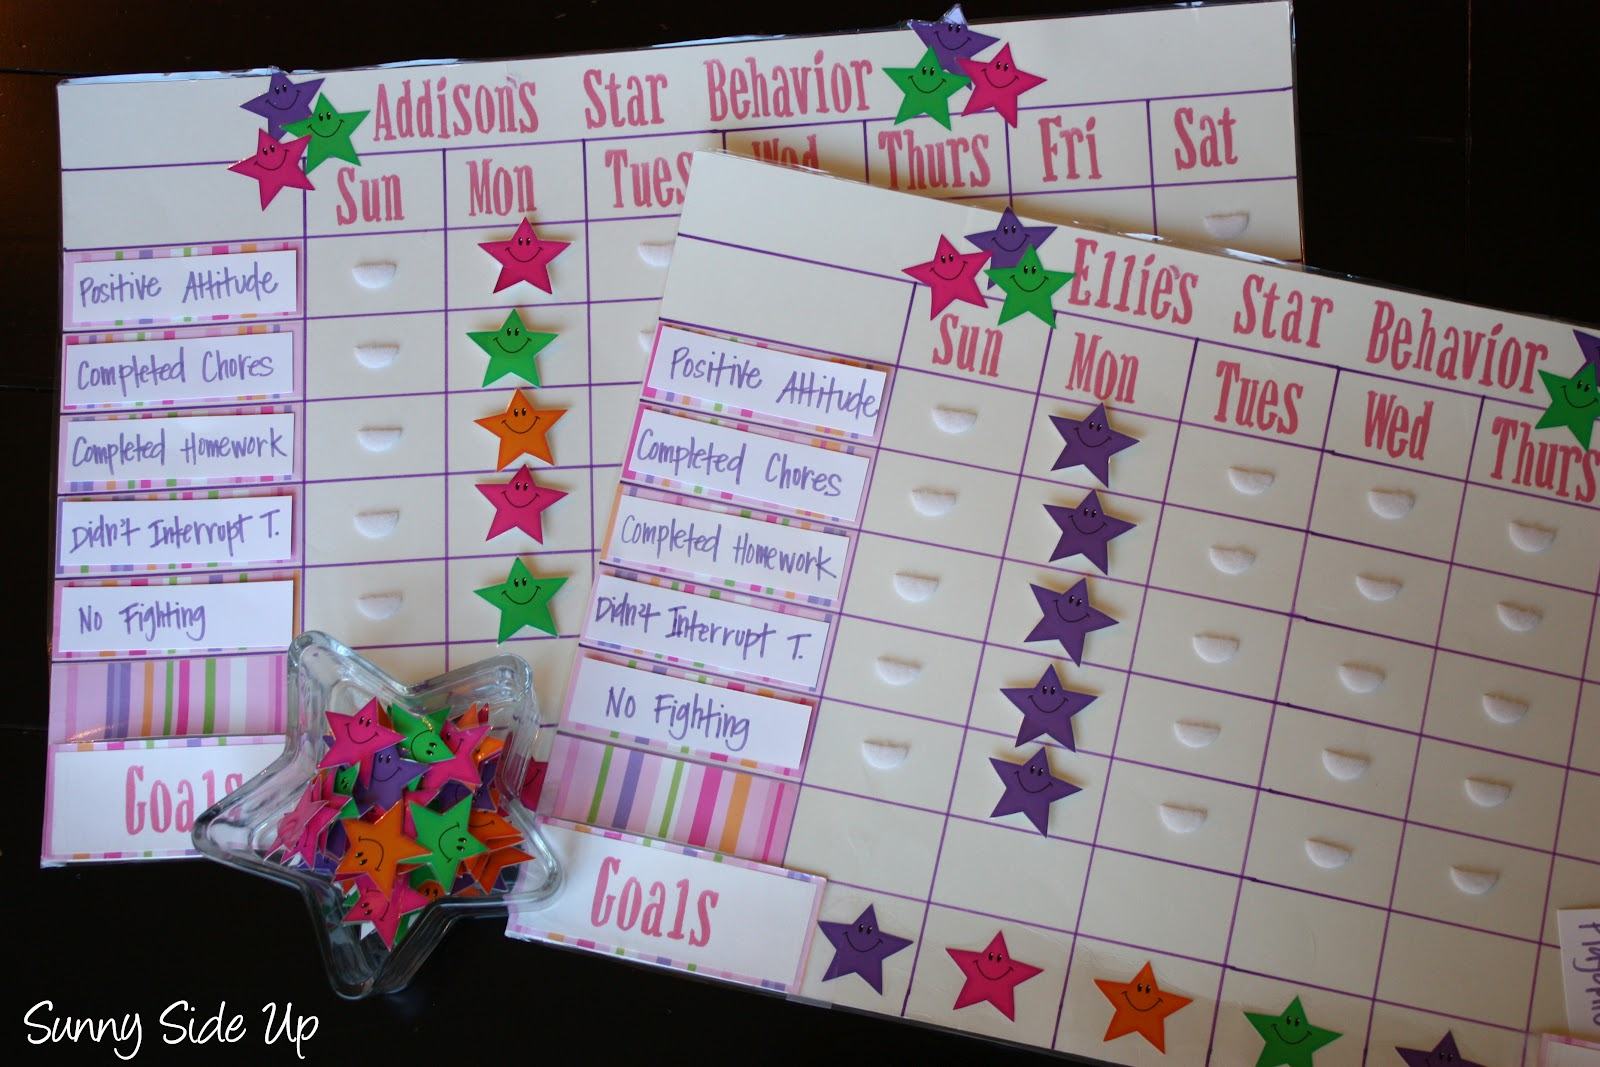 When they were  years old the same star behavior charts that  pull out every summer we need  little extra something to keep us on track also re born sunny side up blog rh thesunnysideupblog